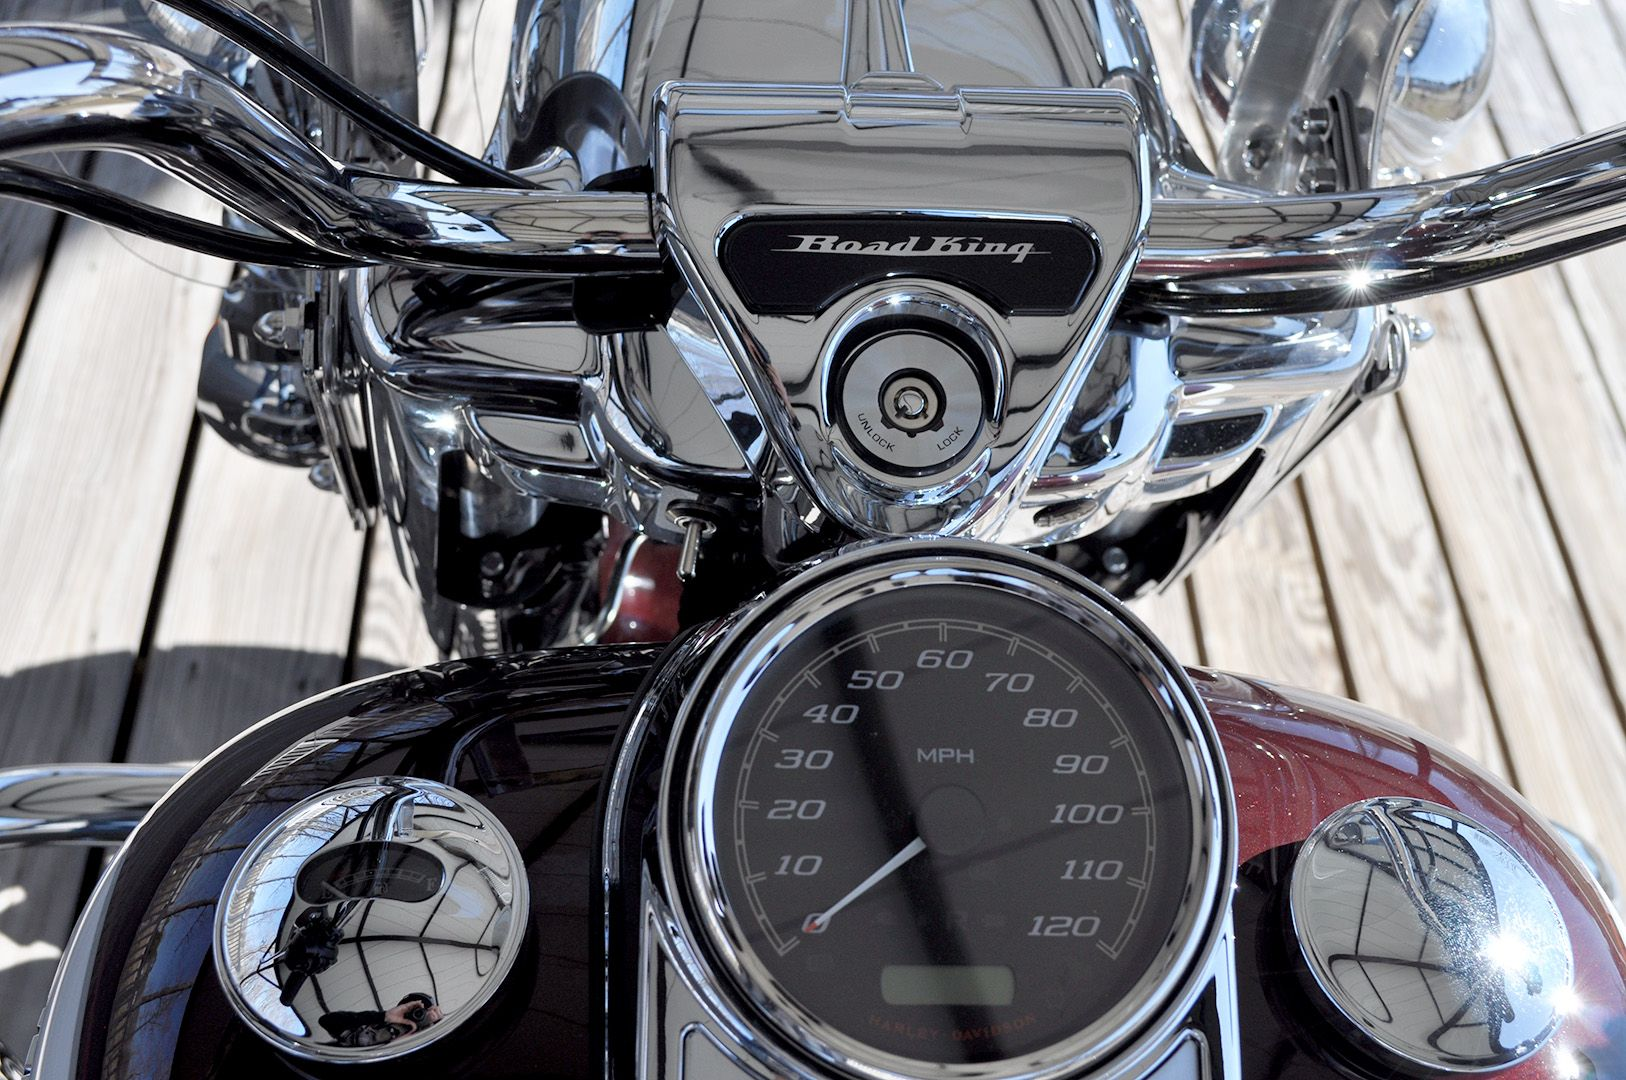 New 2021 Harley-Davidson Road King